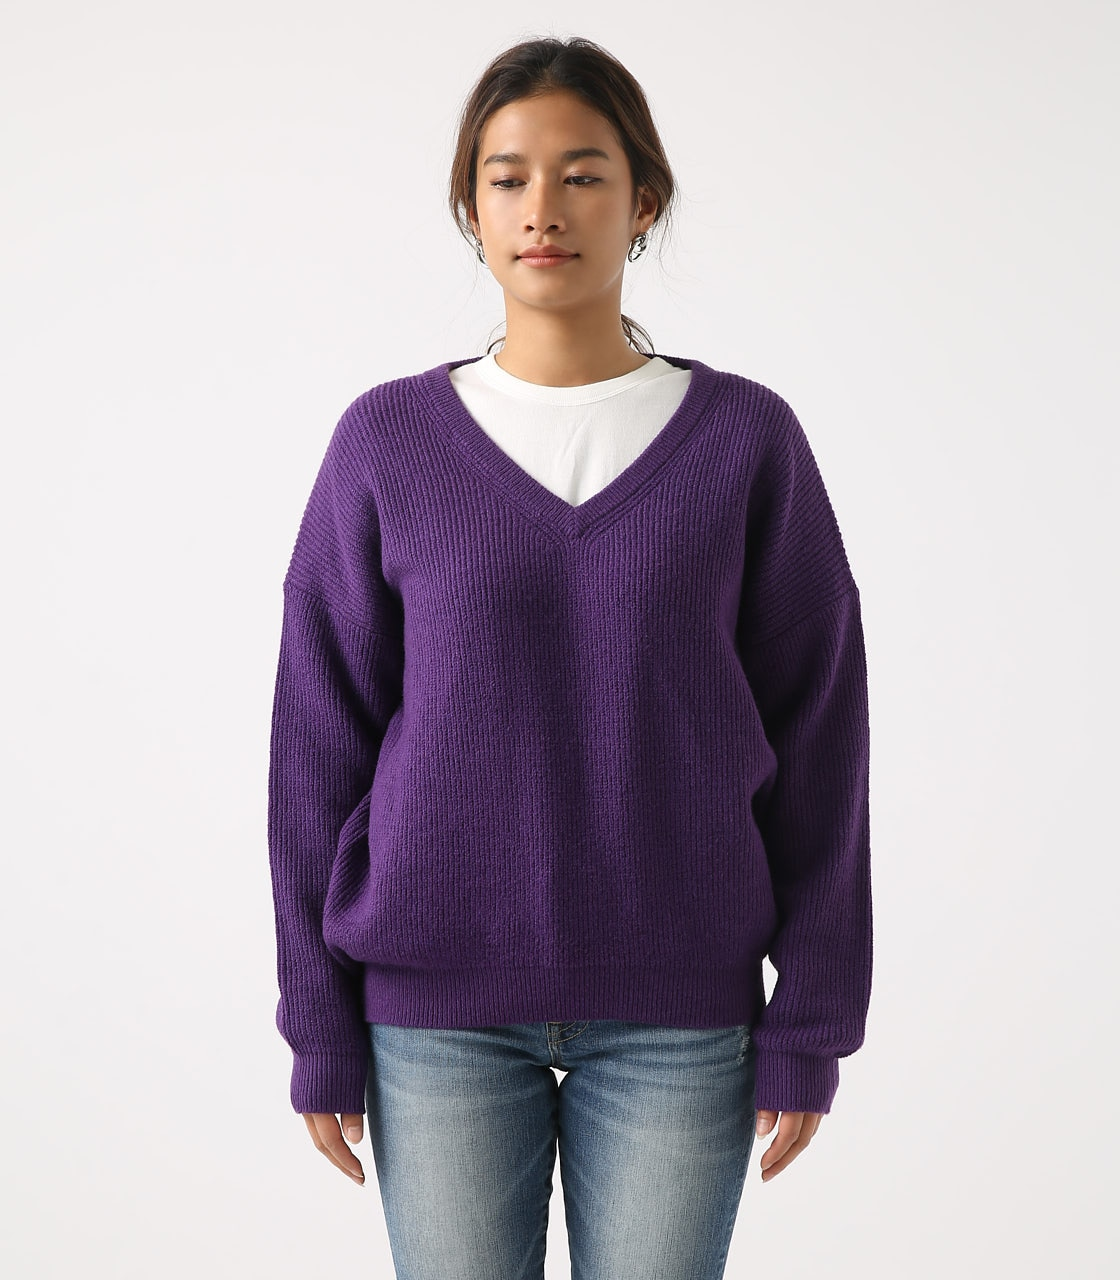 【AZUL BY MOUSSY】V NECK LOOSE KNIT TOPS 詳細画像 PUR 5